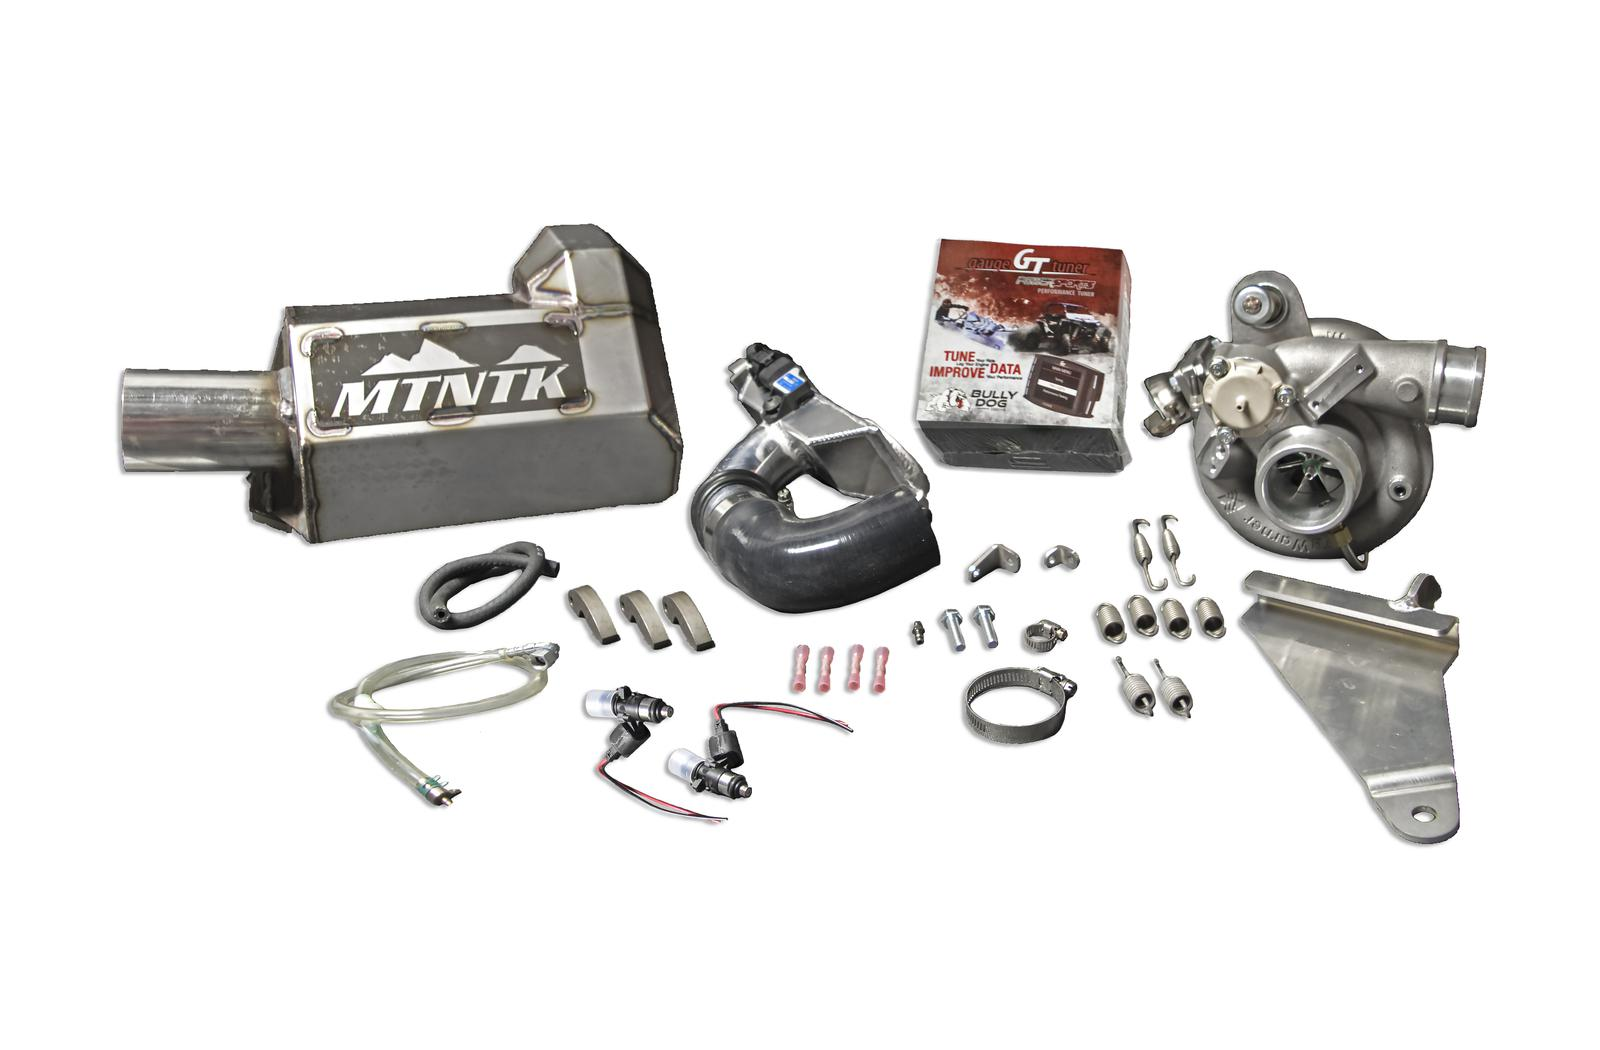 MTNTK Axys Turbo Kit Performance Motor Sports Ashton, ID